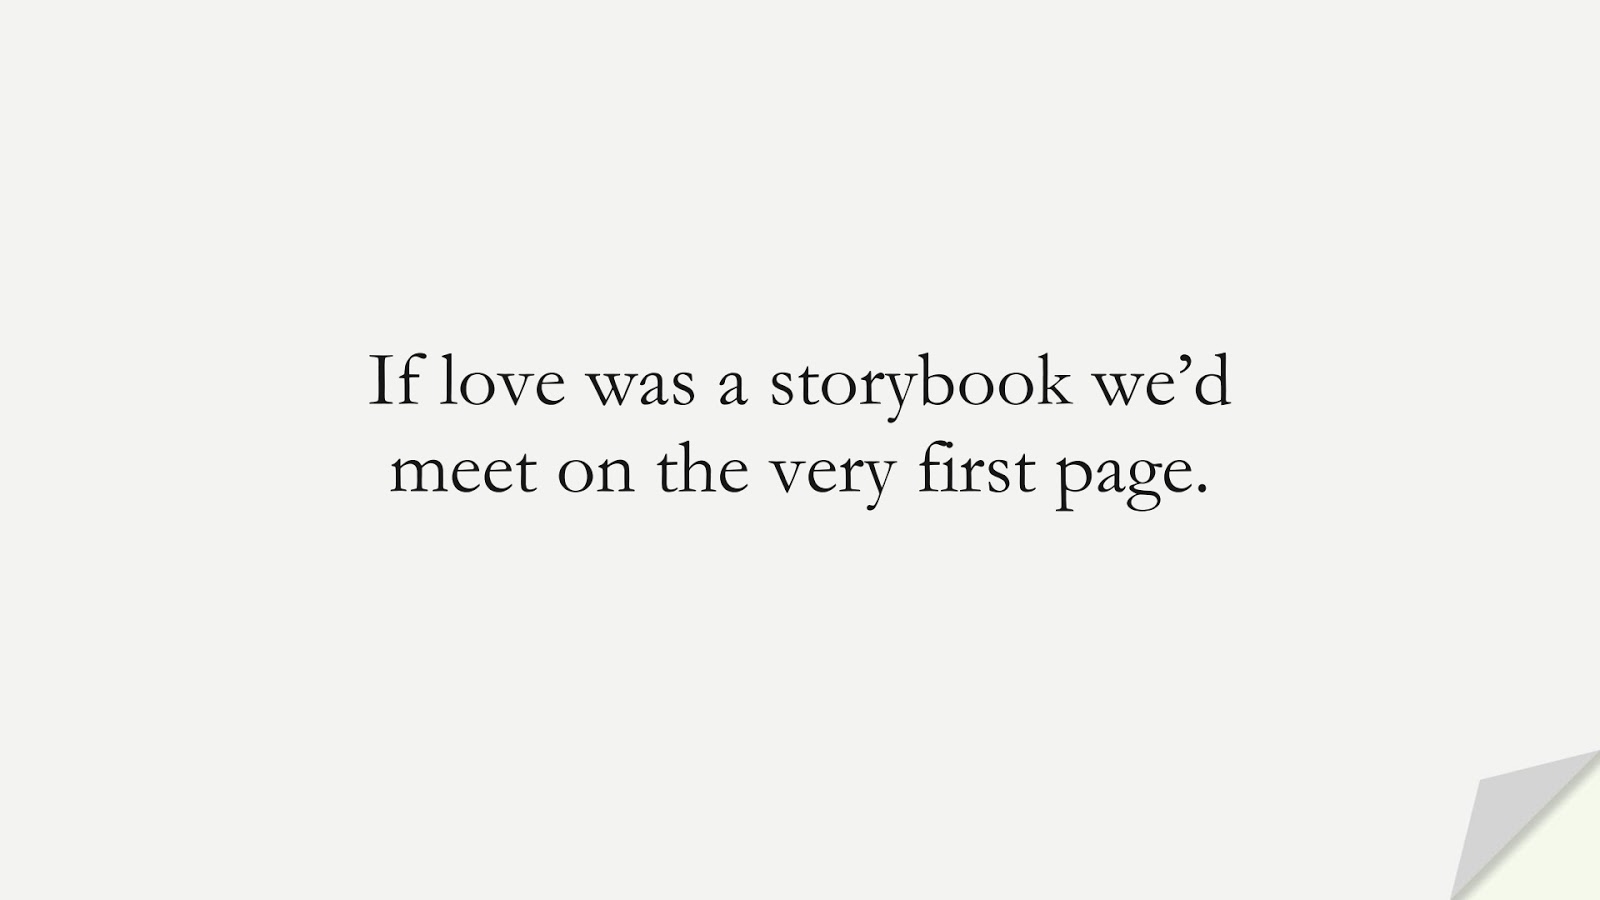 If love was a storybook we'd meet on the very first page.FALSE